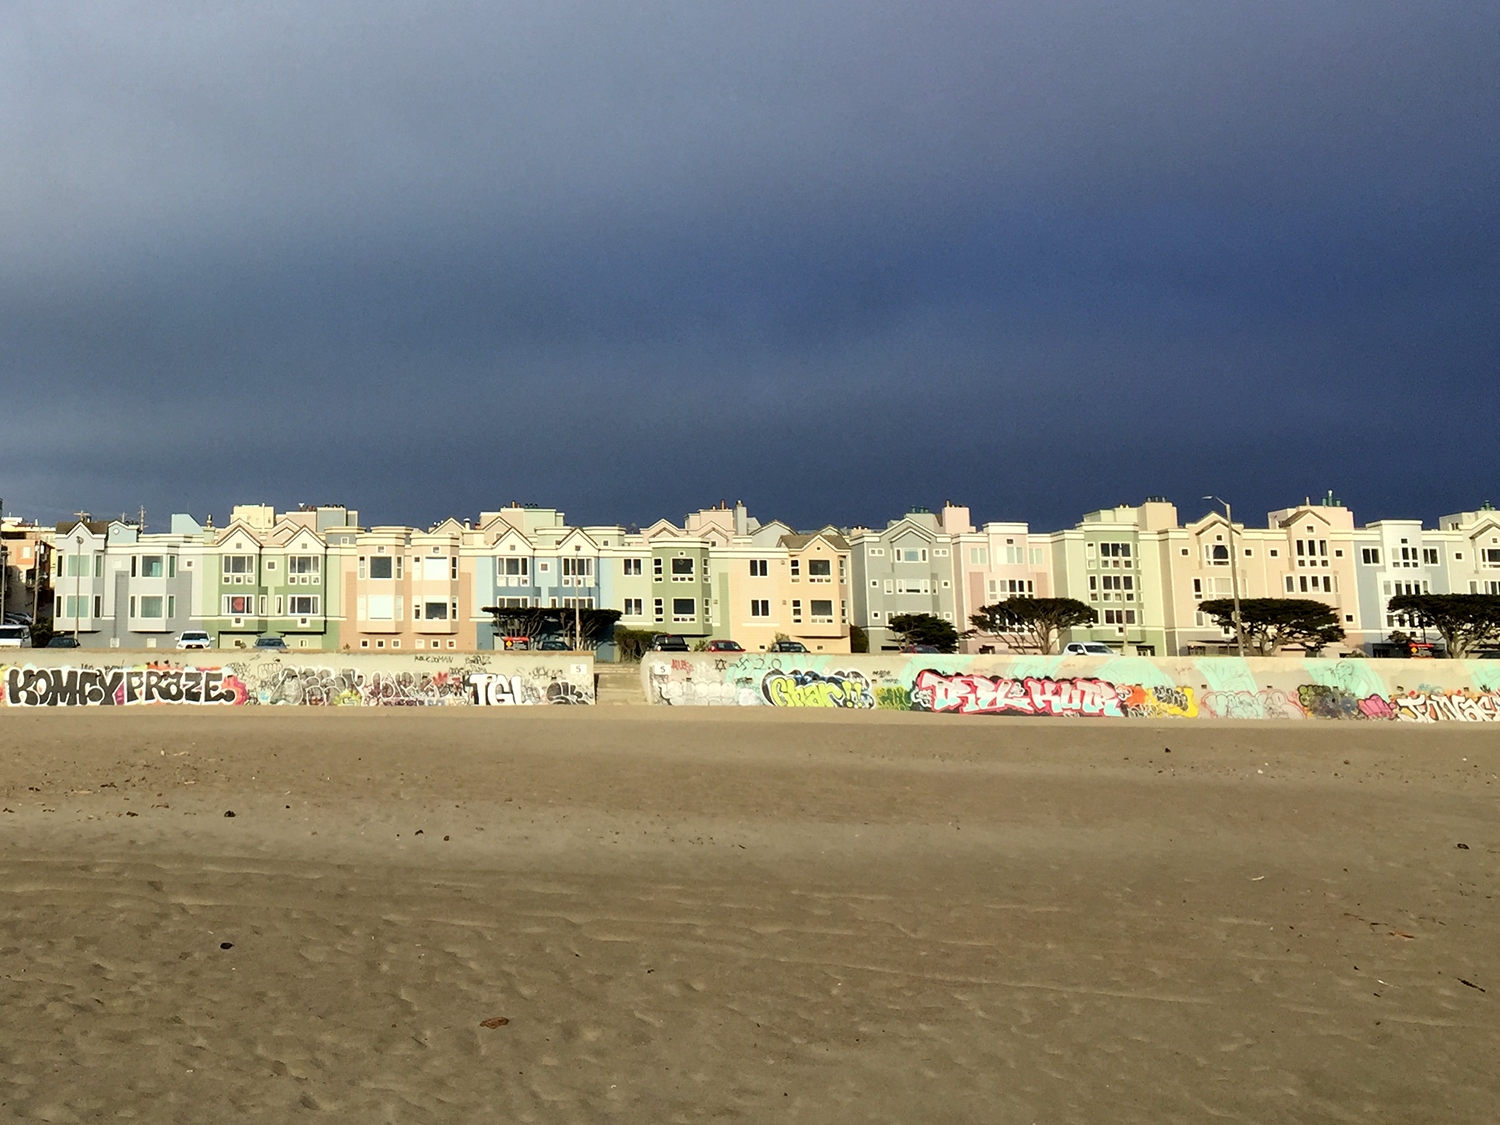 Ocean Beach  Looking East   6:50 pm